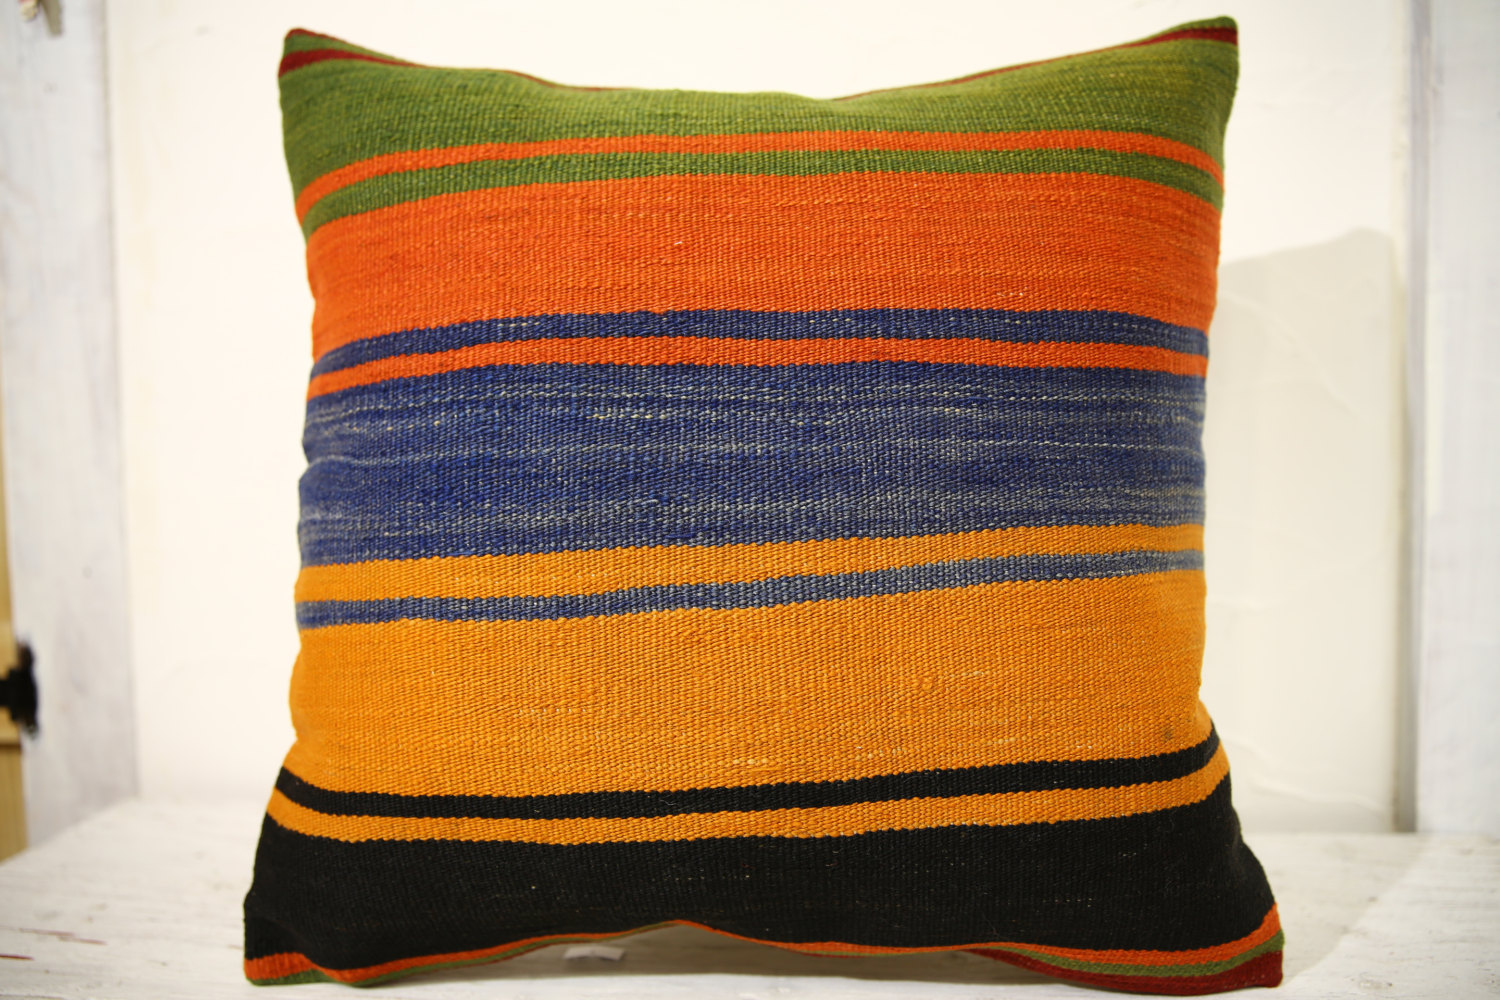 Kilim Pillows | 20x20 | Decorative Pillows | 661 | Accent Pillows, Kilim cushion